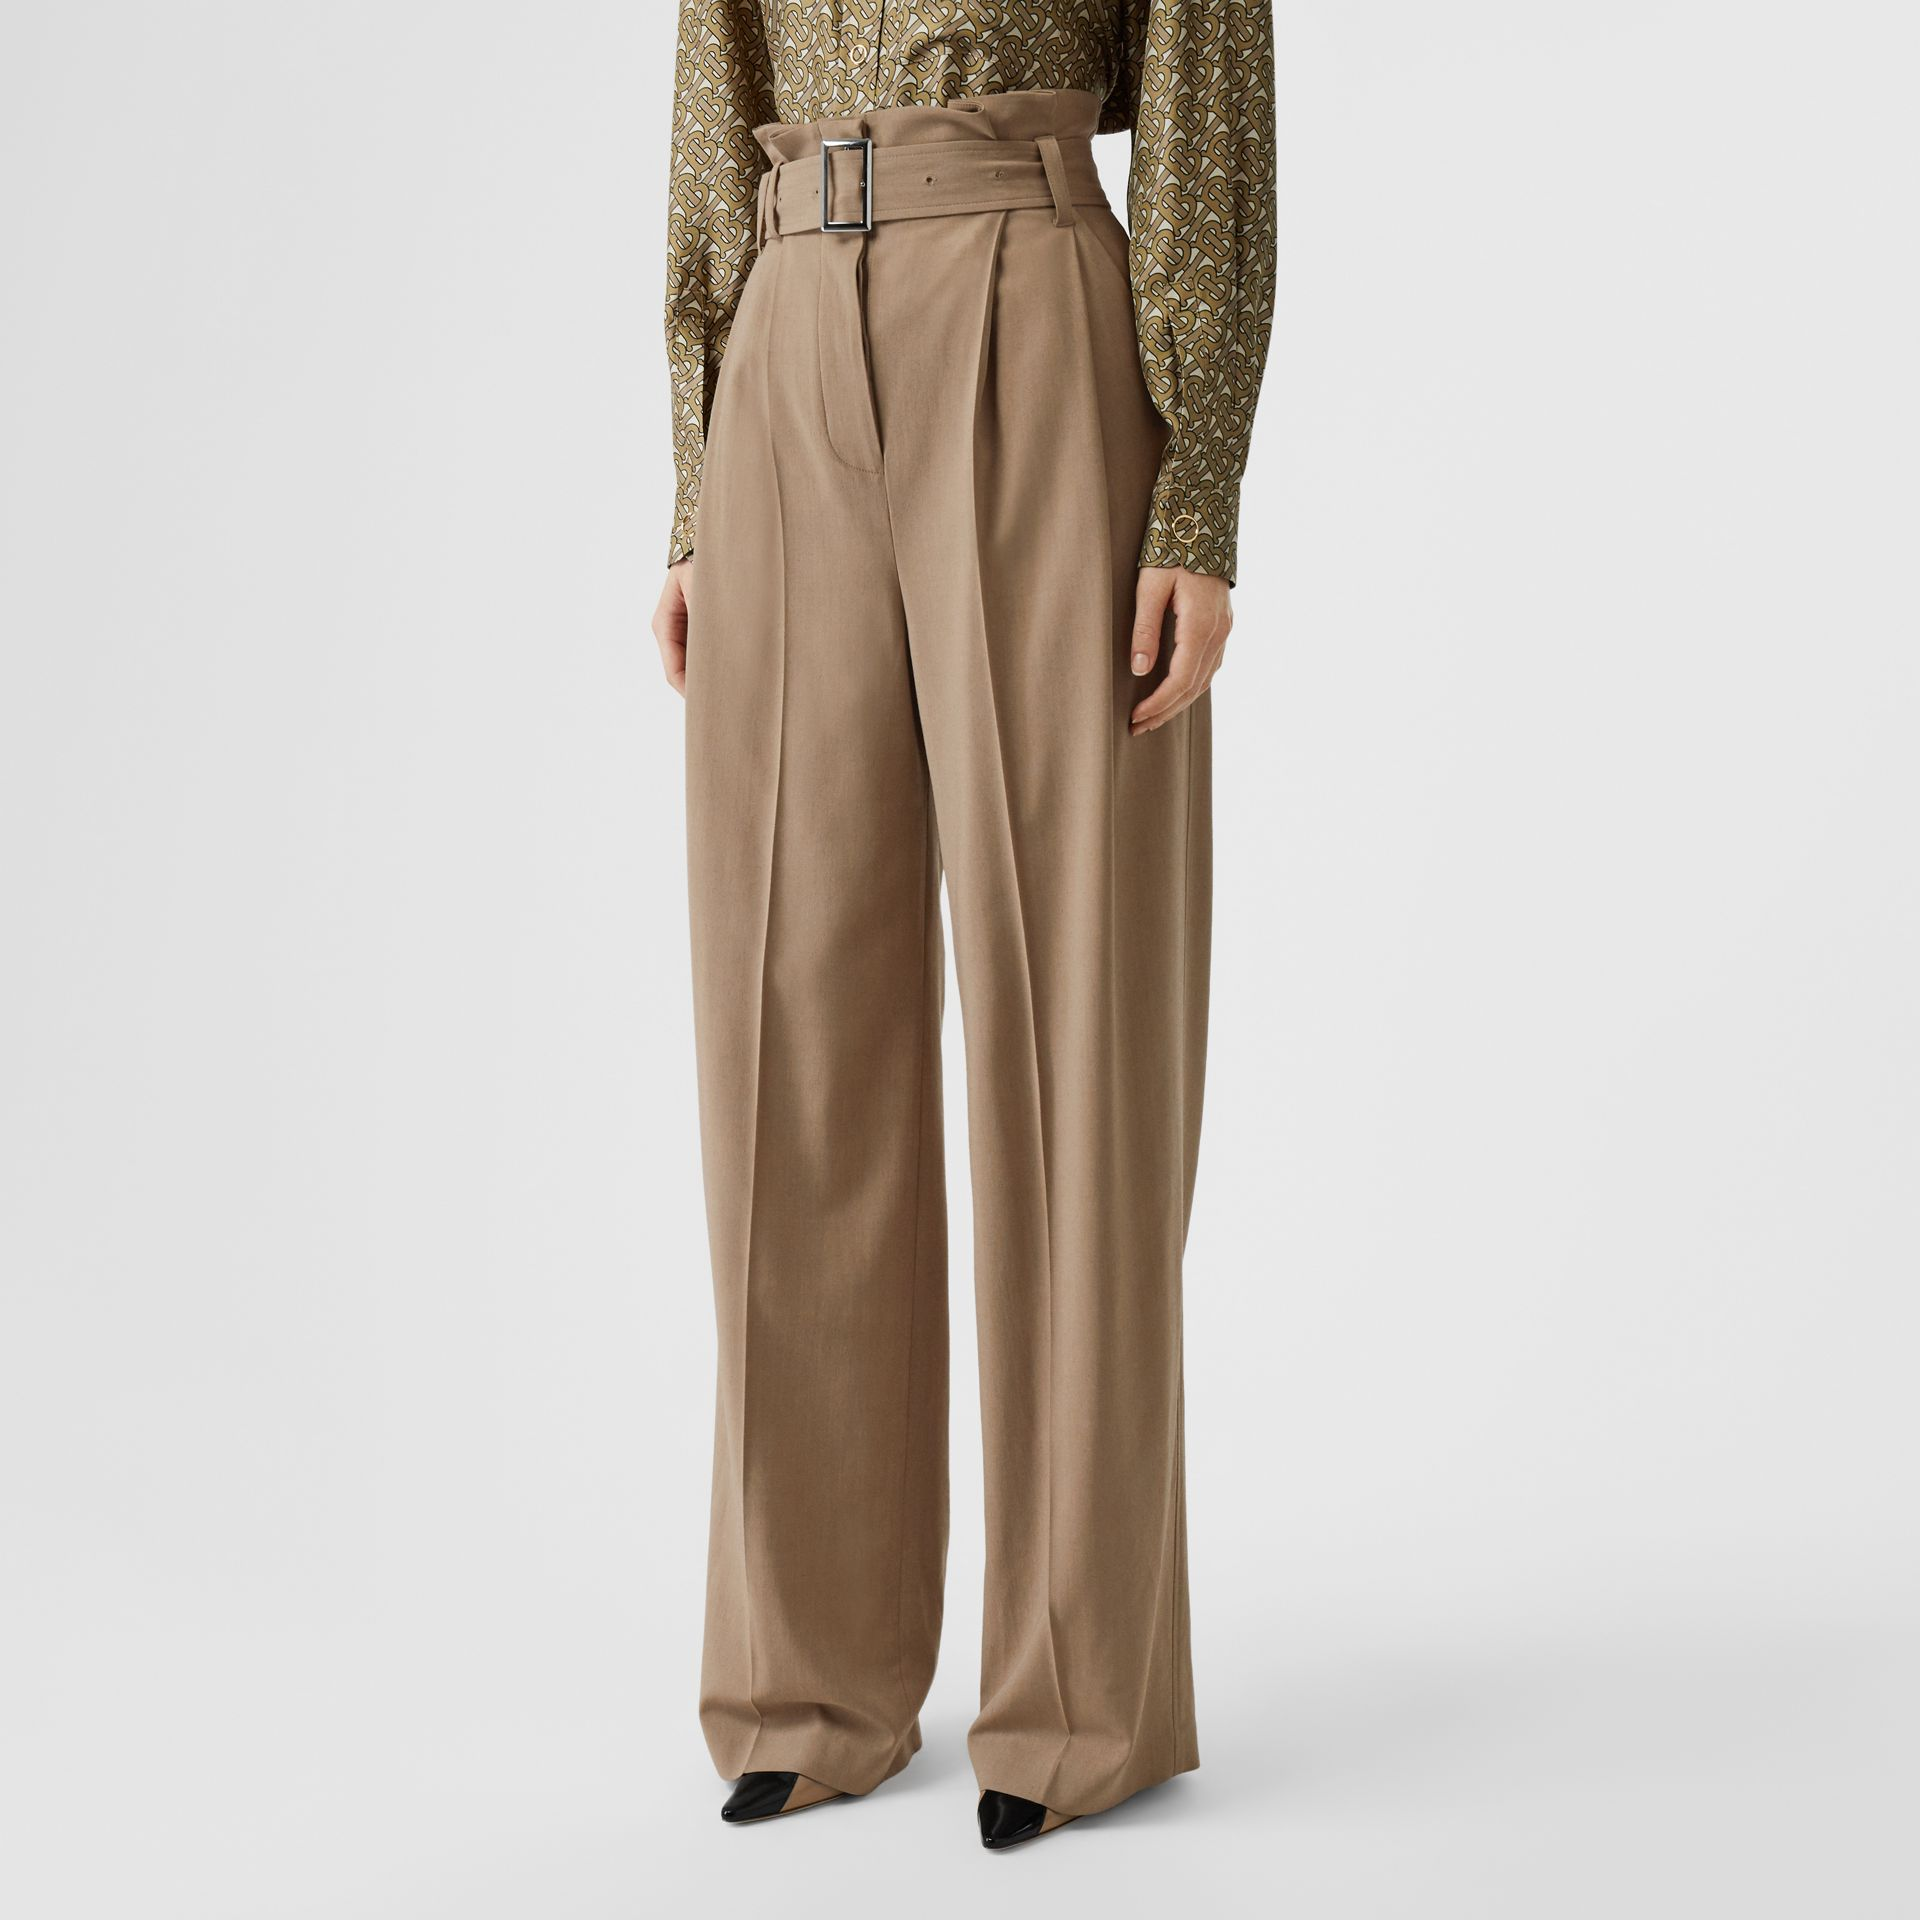 Wool Blend High-waisted Trousers in Warm Taupe - Women | Burberry - gallery image 4